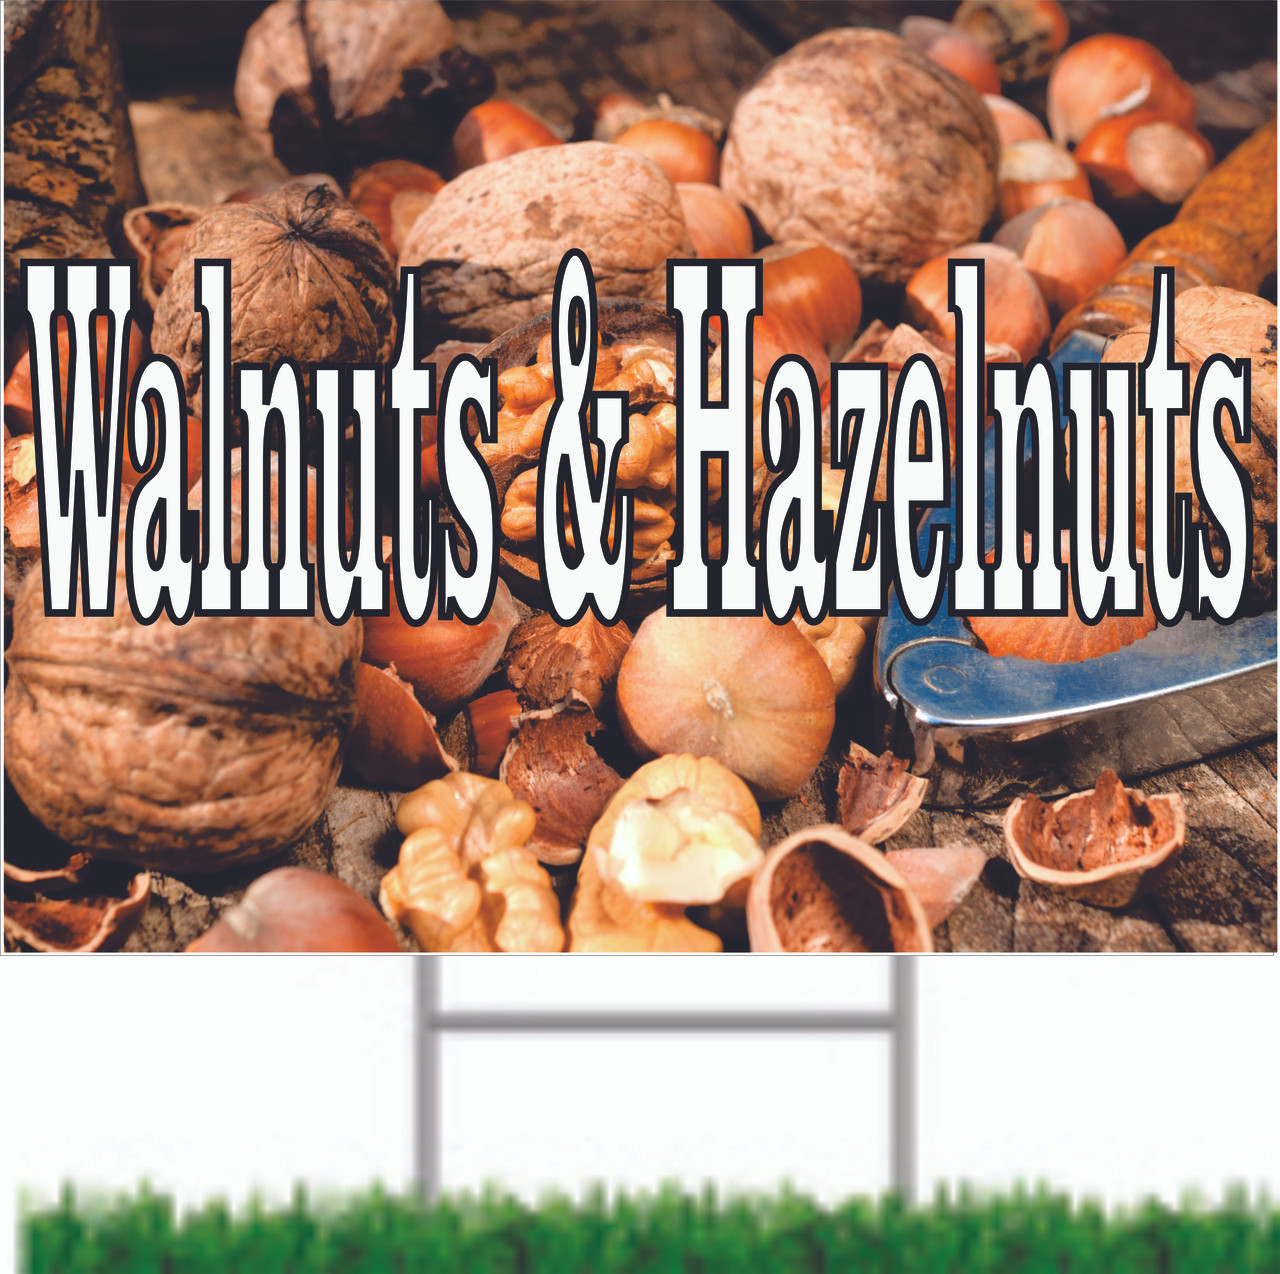 Very Nice Looking Walnuts Road Sign Will Get Noticed.